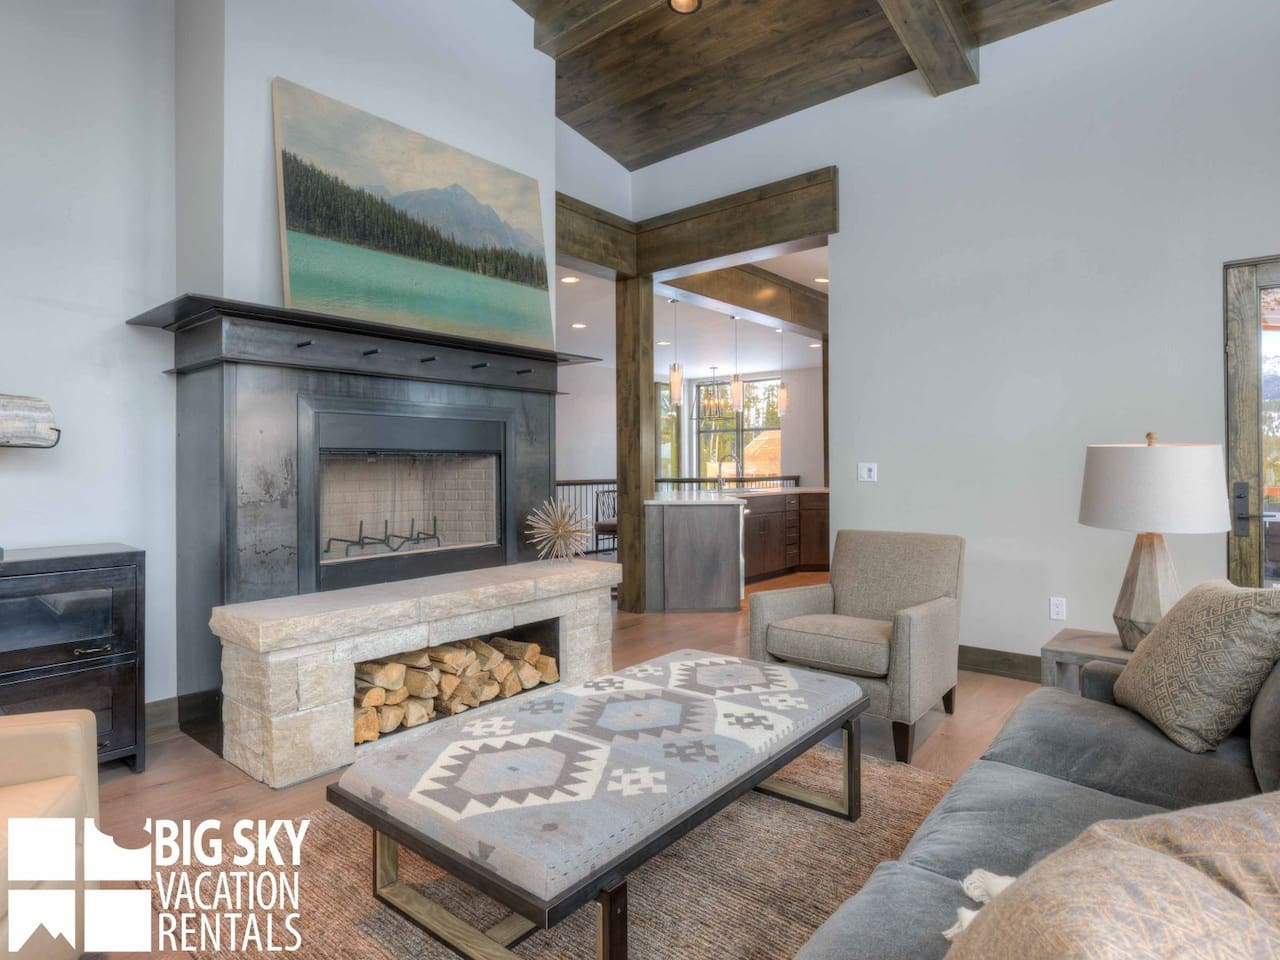 new luxury home premier property with ski access amazing views